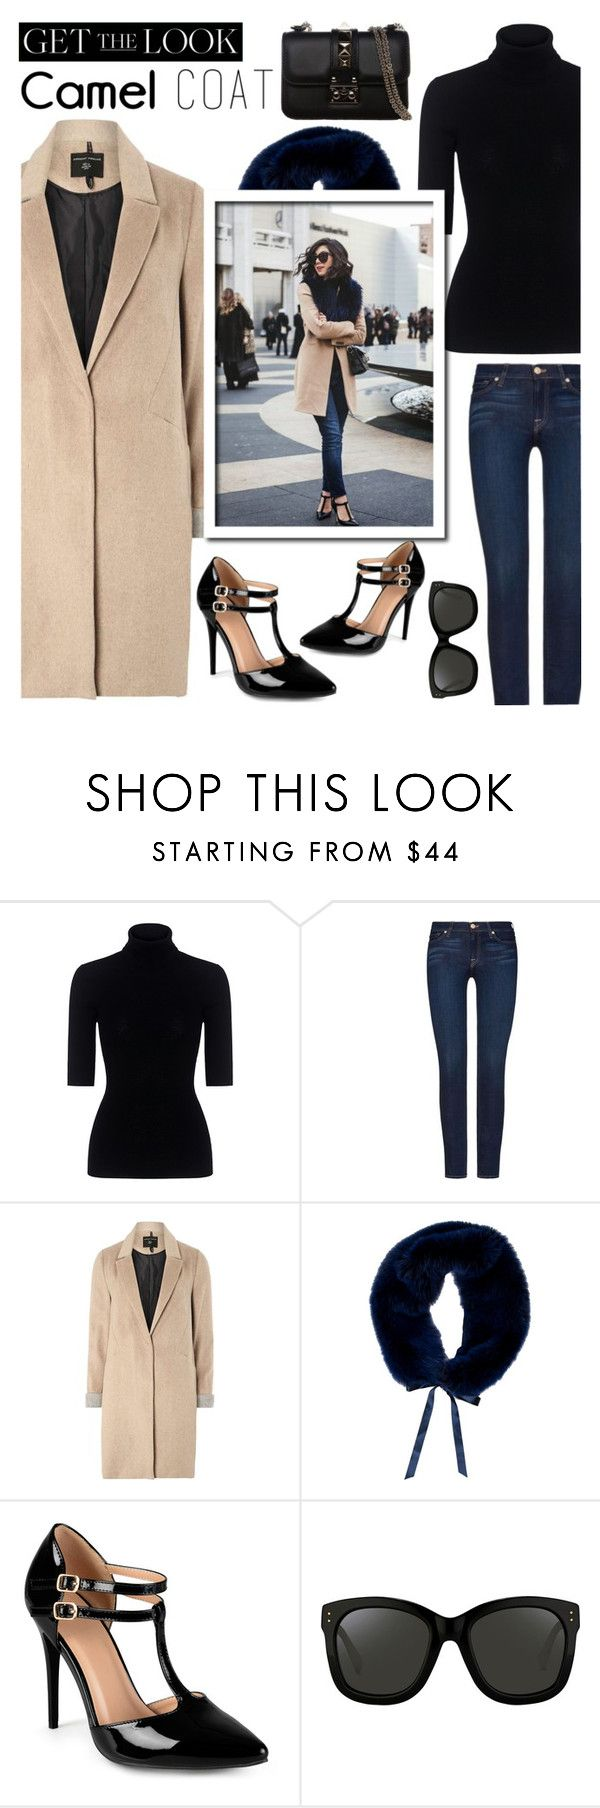 """""""Wear A Camel Coat..."""" by glamorous09 ❤ liked on Polyvore featuring Theory, 7 For All Mankind, mel, Oscar de la Renta, Journee Collection, Linda Farrow, Valentino, fallstyle and camelcoat"""